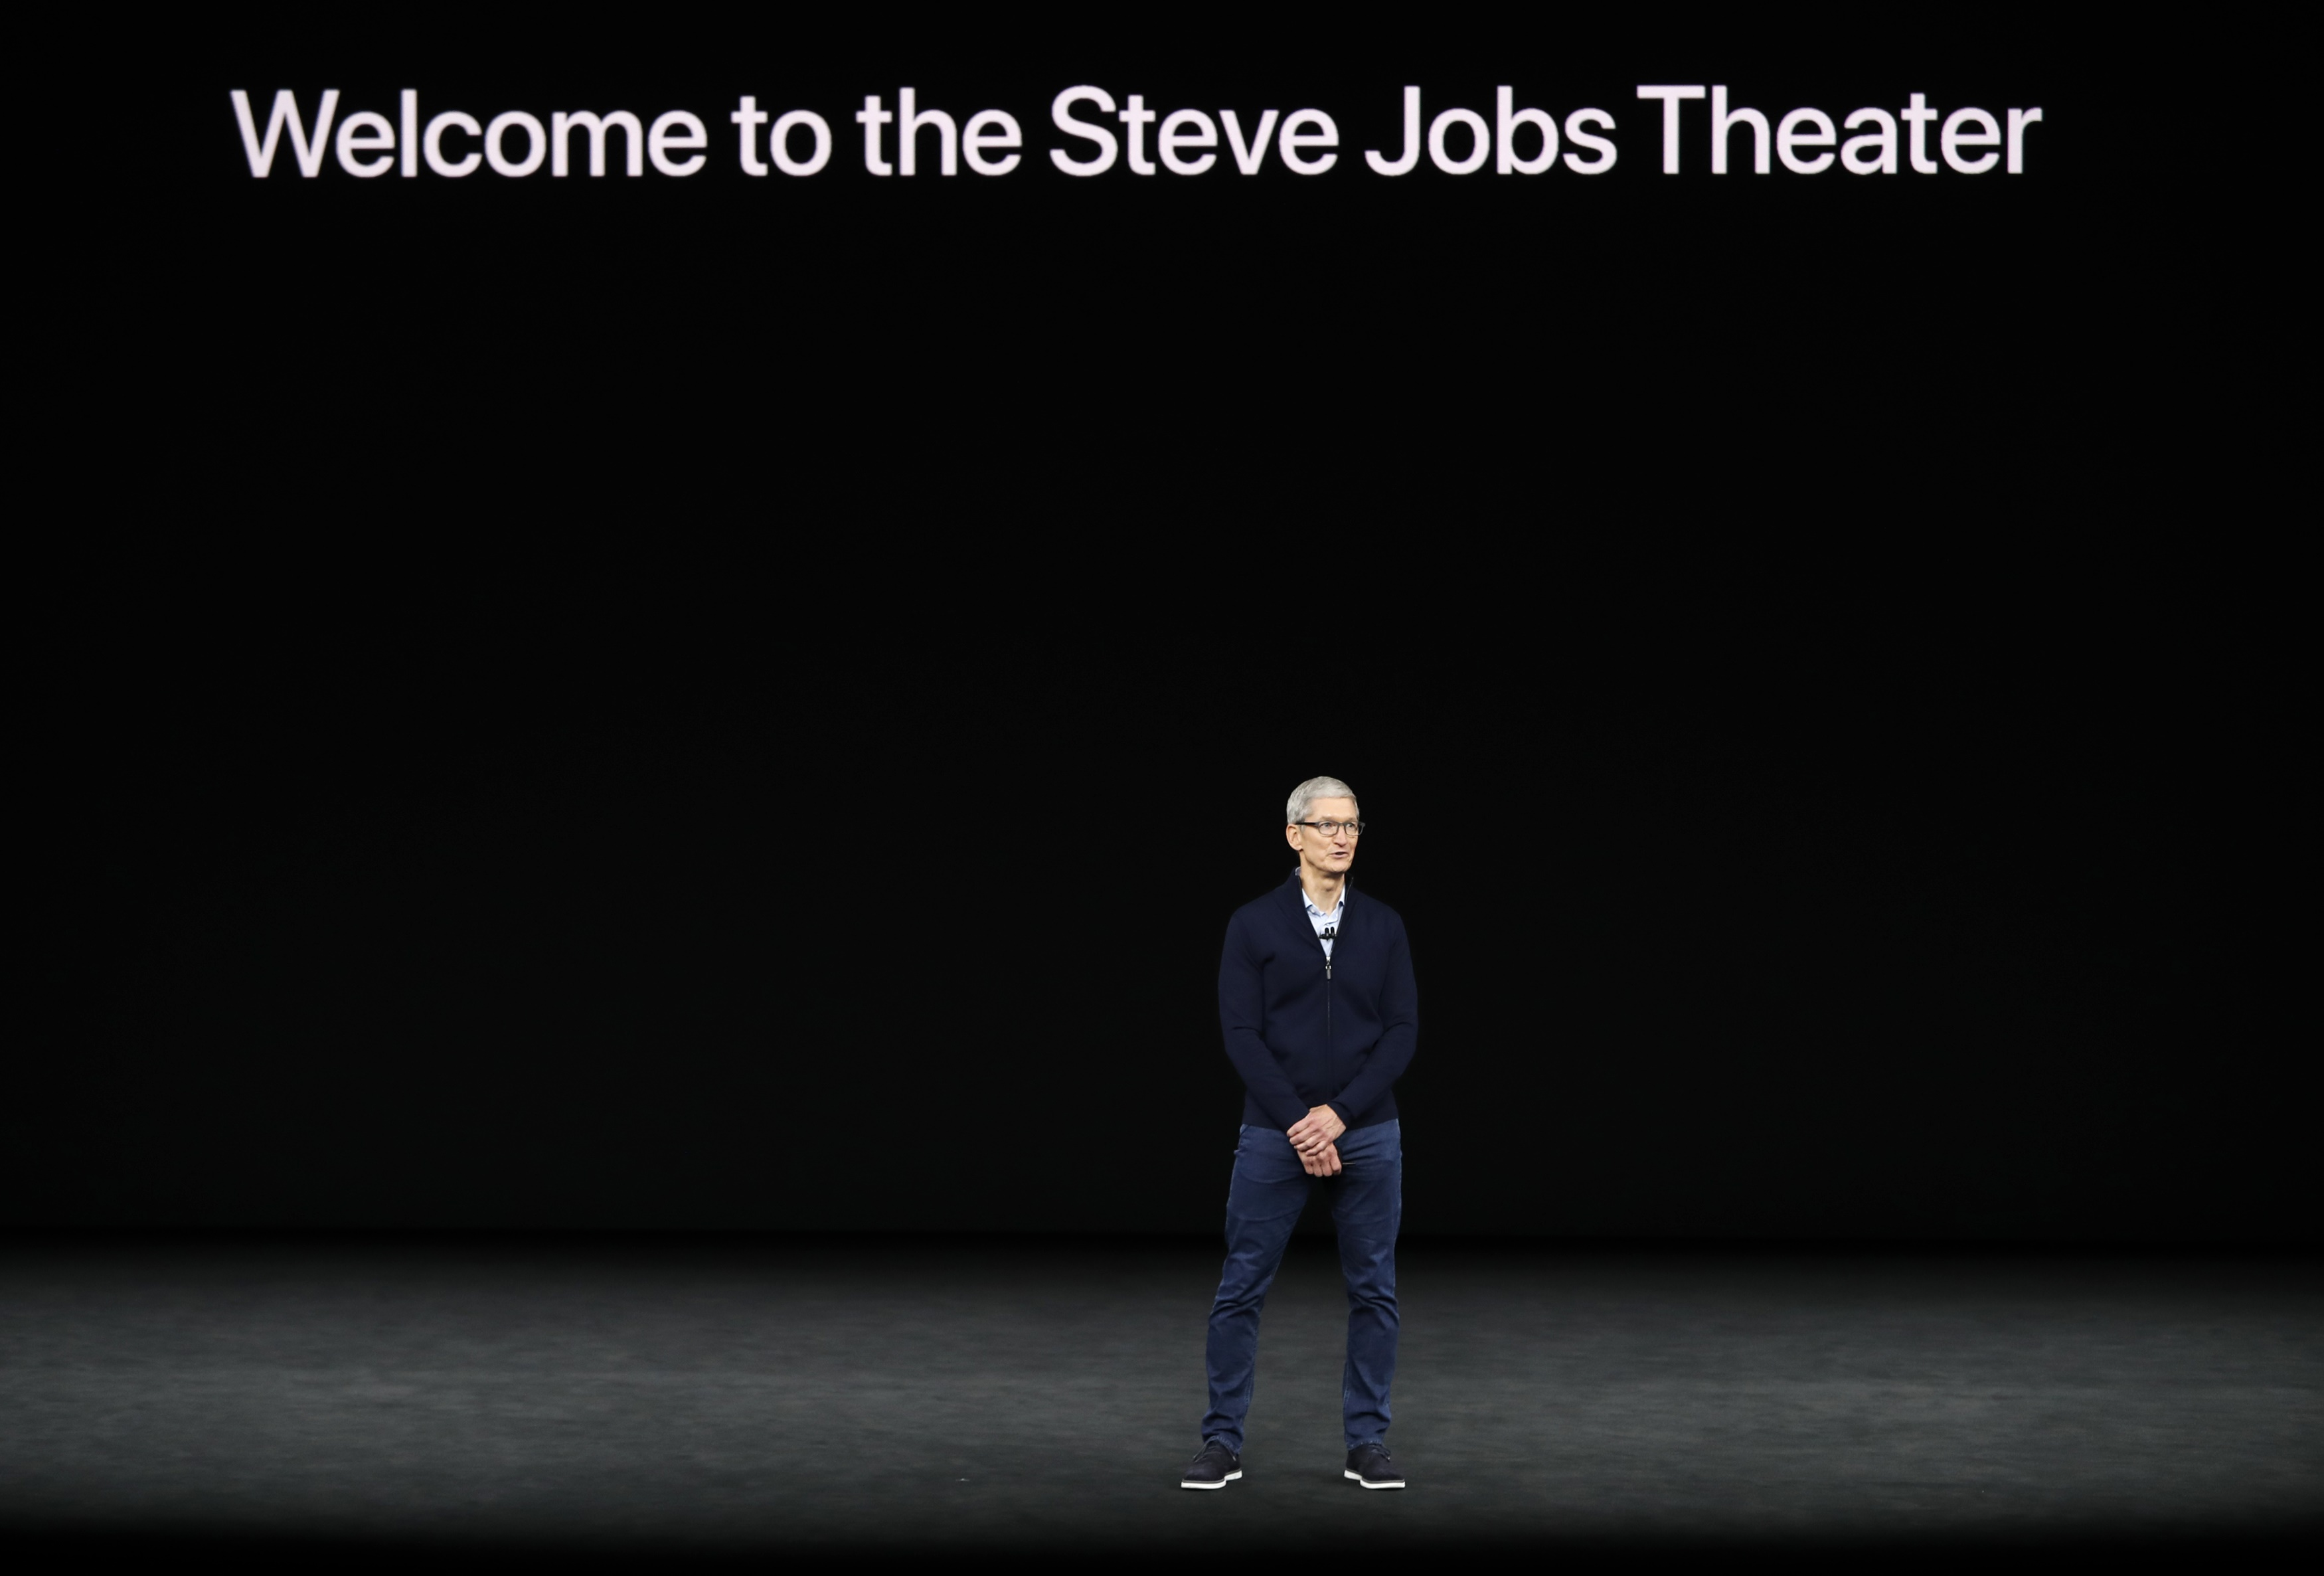 Tim Cook, CEO of Apple, speaks during a product launch event in Cupertino, Calif., on Sept. 12, 2017. (REUTERS/Stephen Lam)